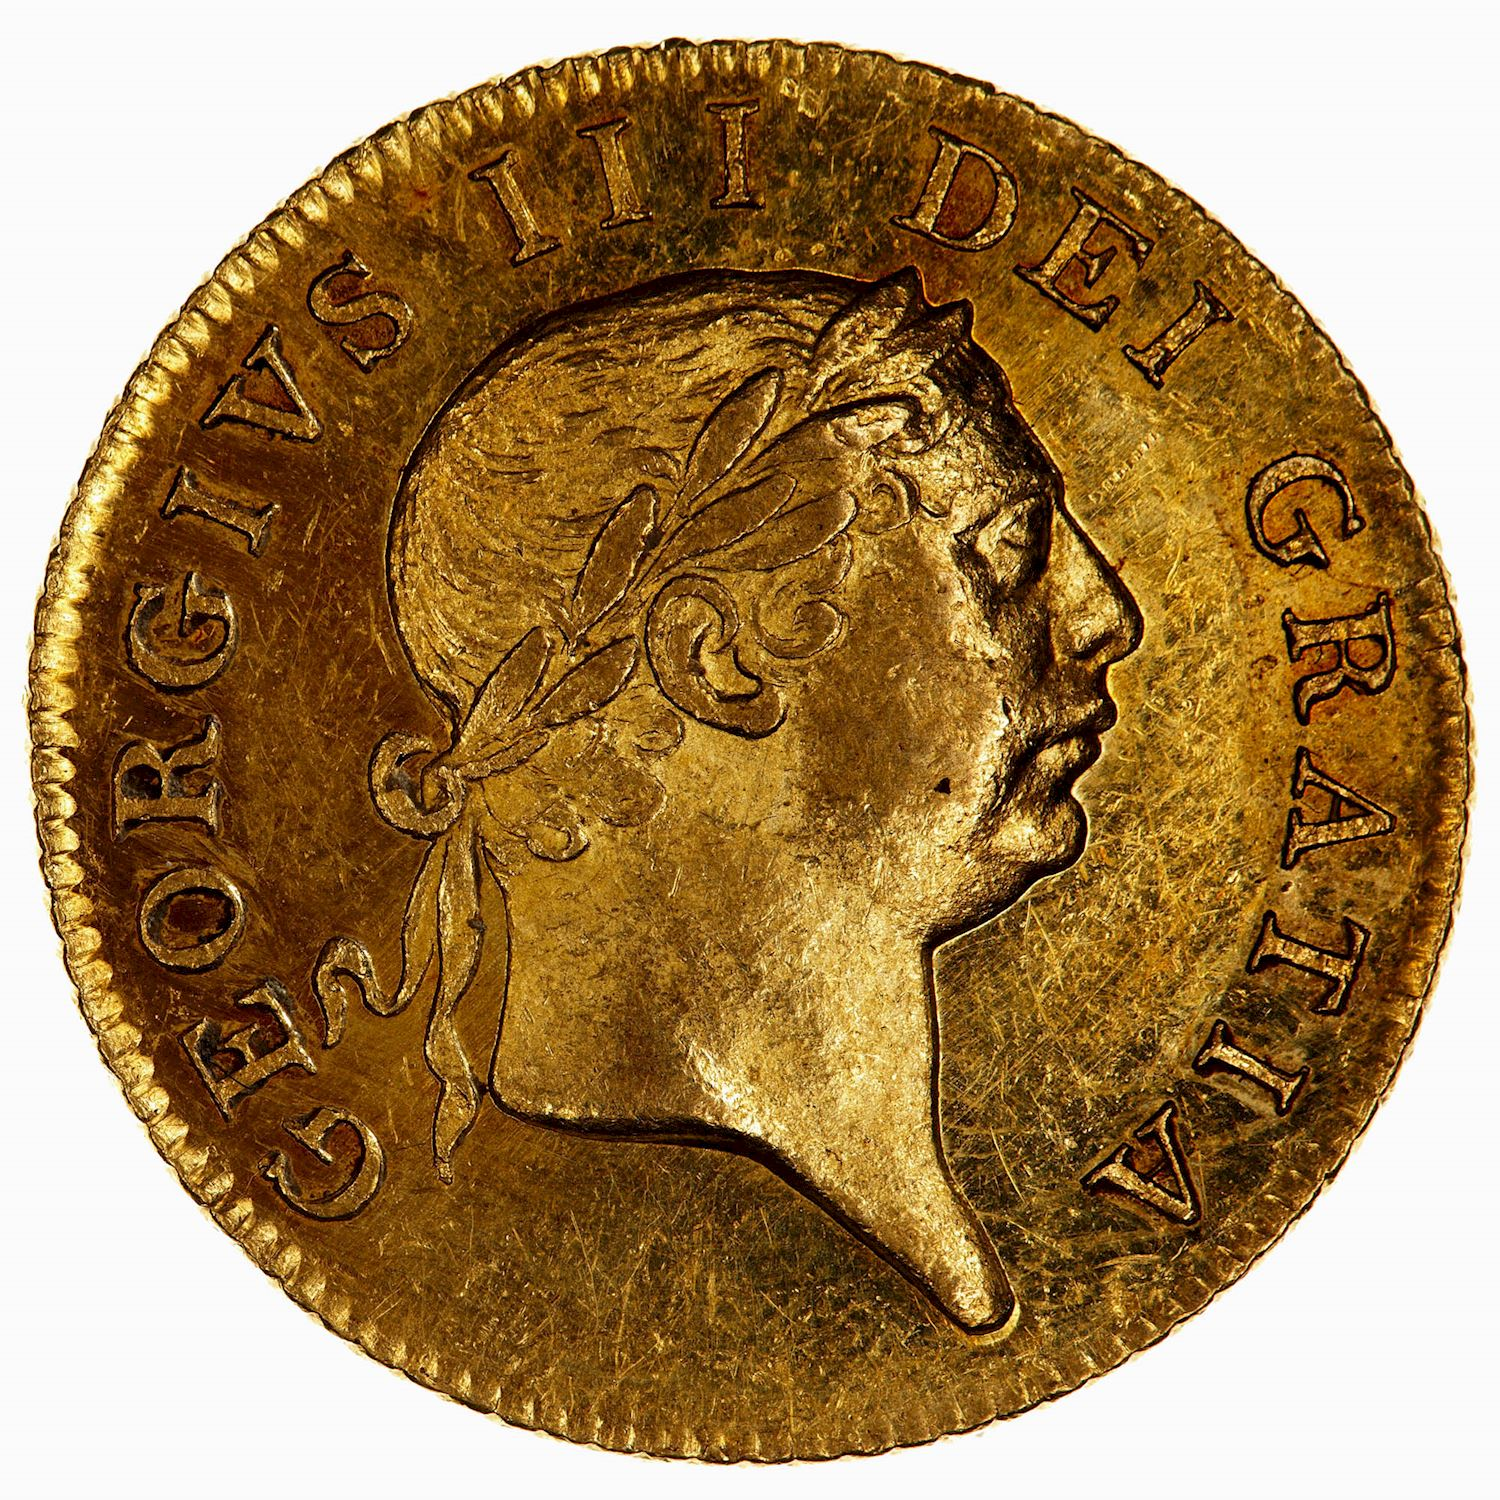 Guinea: Photo Coin - 1 Guinea, George III, Great Britain, 1813